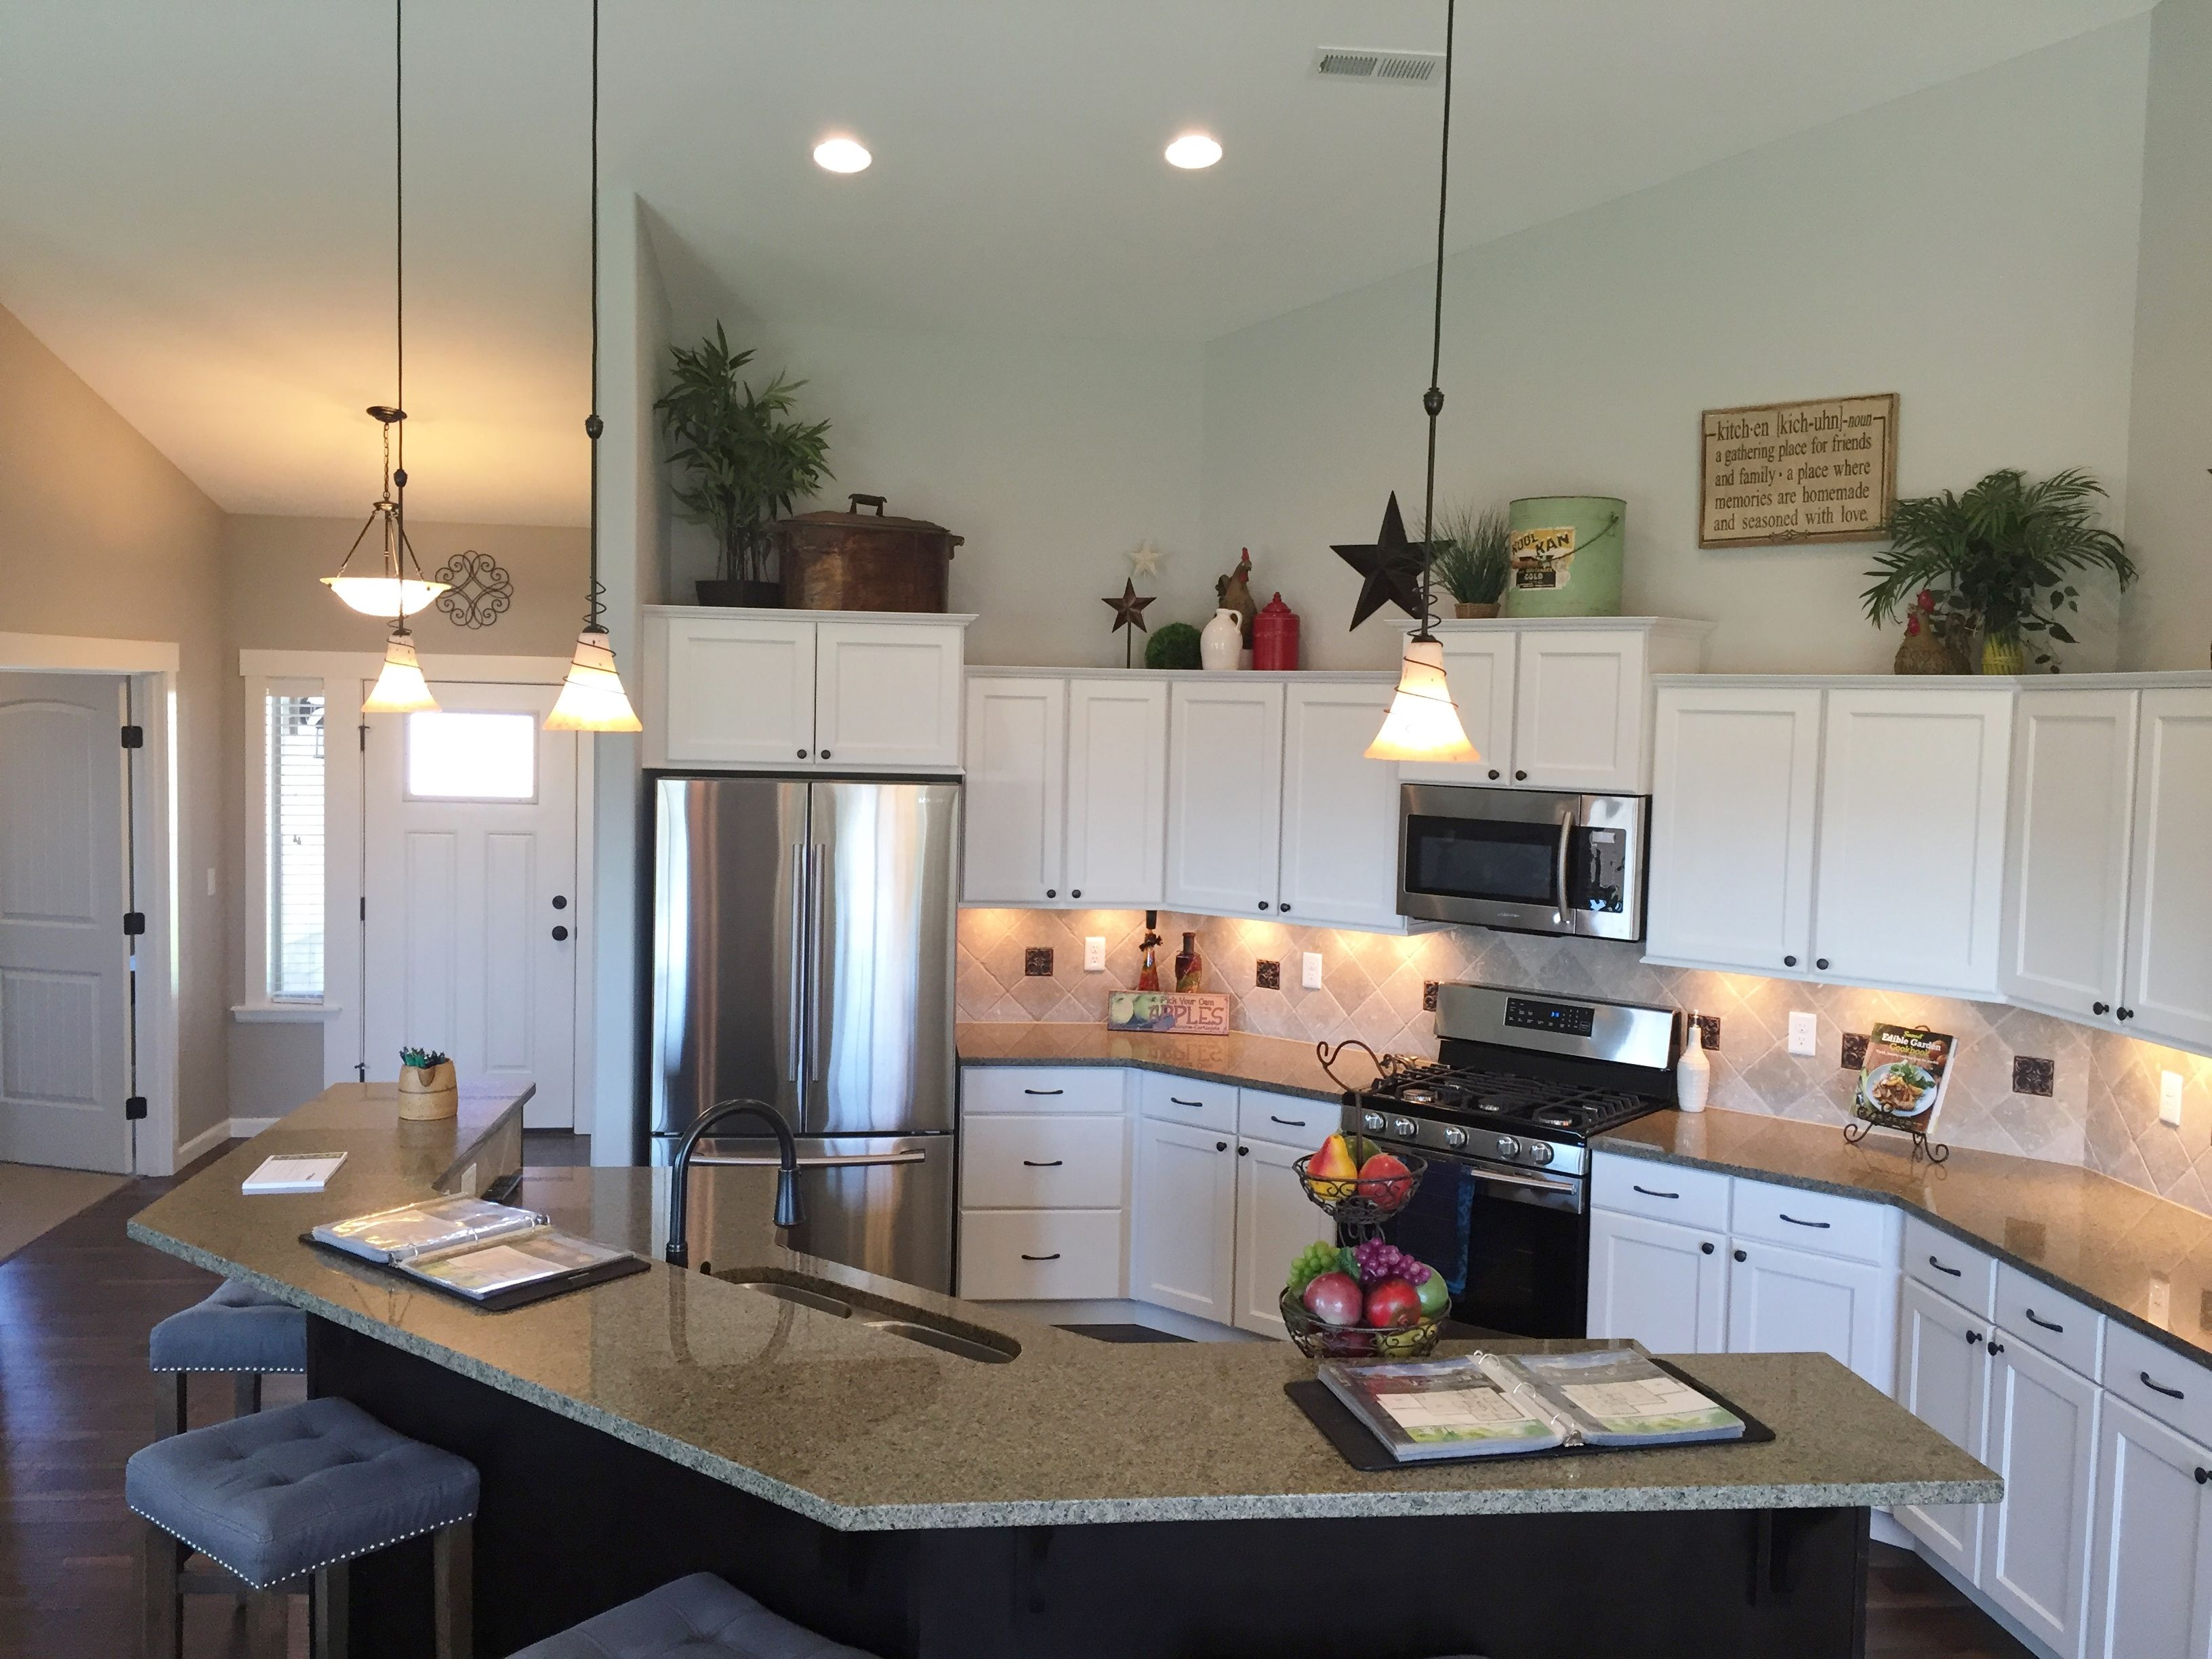 Lexar Model Home 2057 Kitchen | Home, Home kitchens ... on Model Kitchen Picture  id=38385